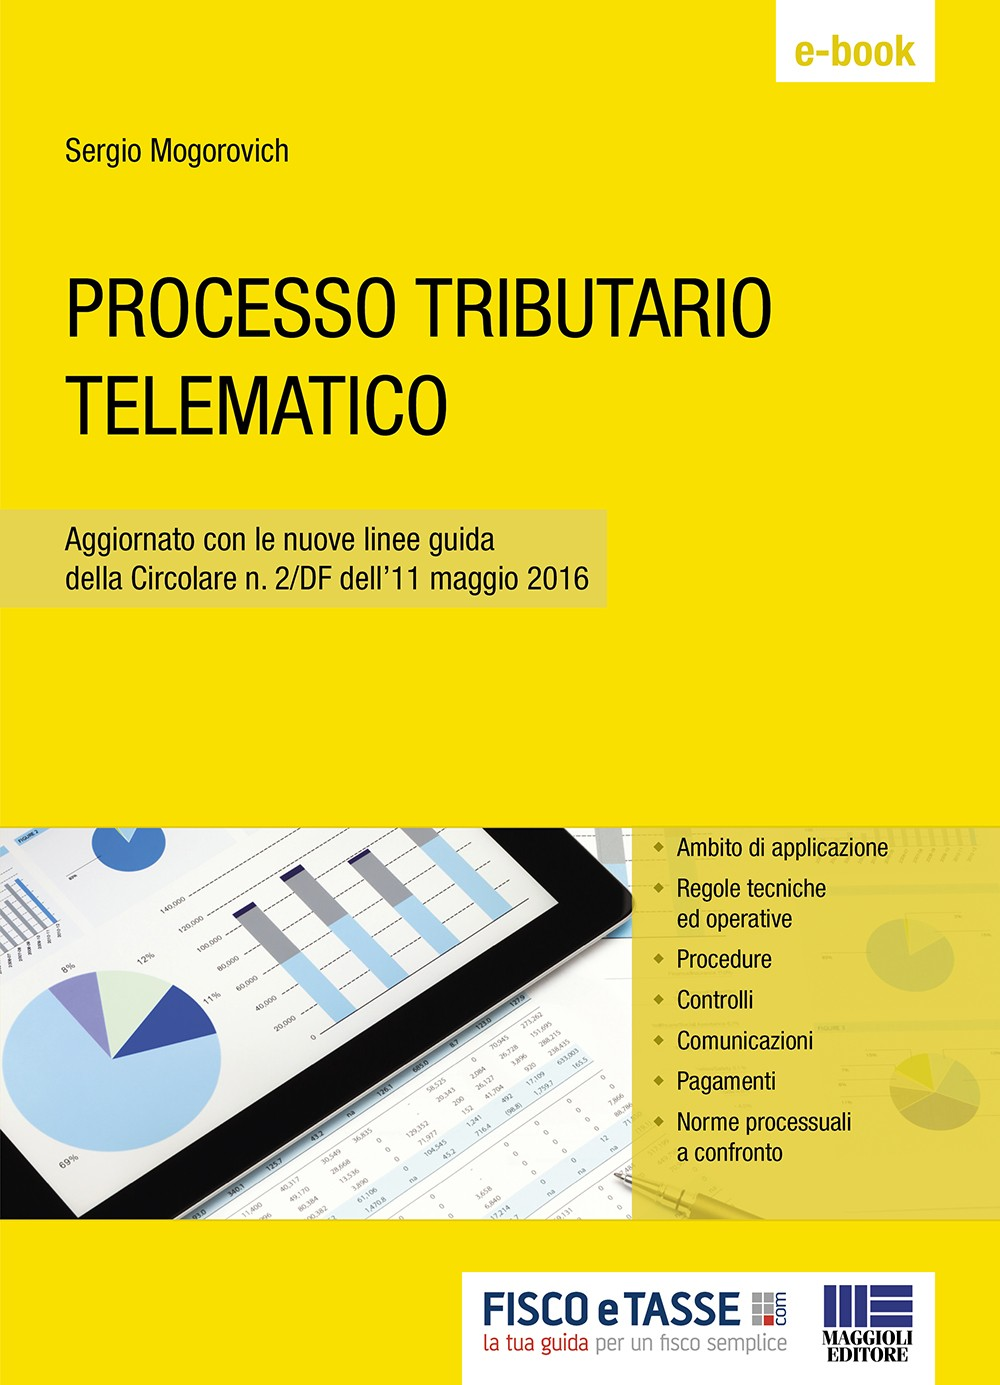 Book Cover Images Api : Processo tributario telematico sergio mogorovich ebook